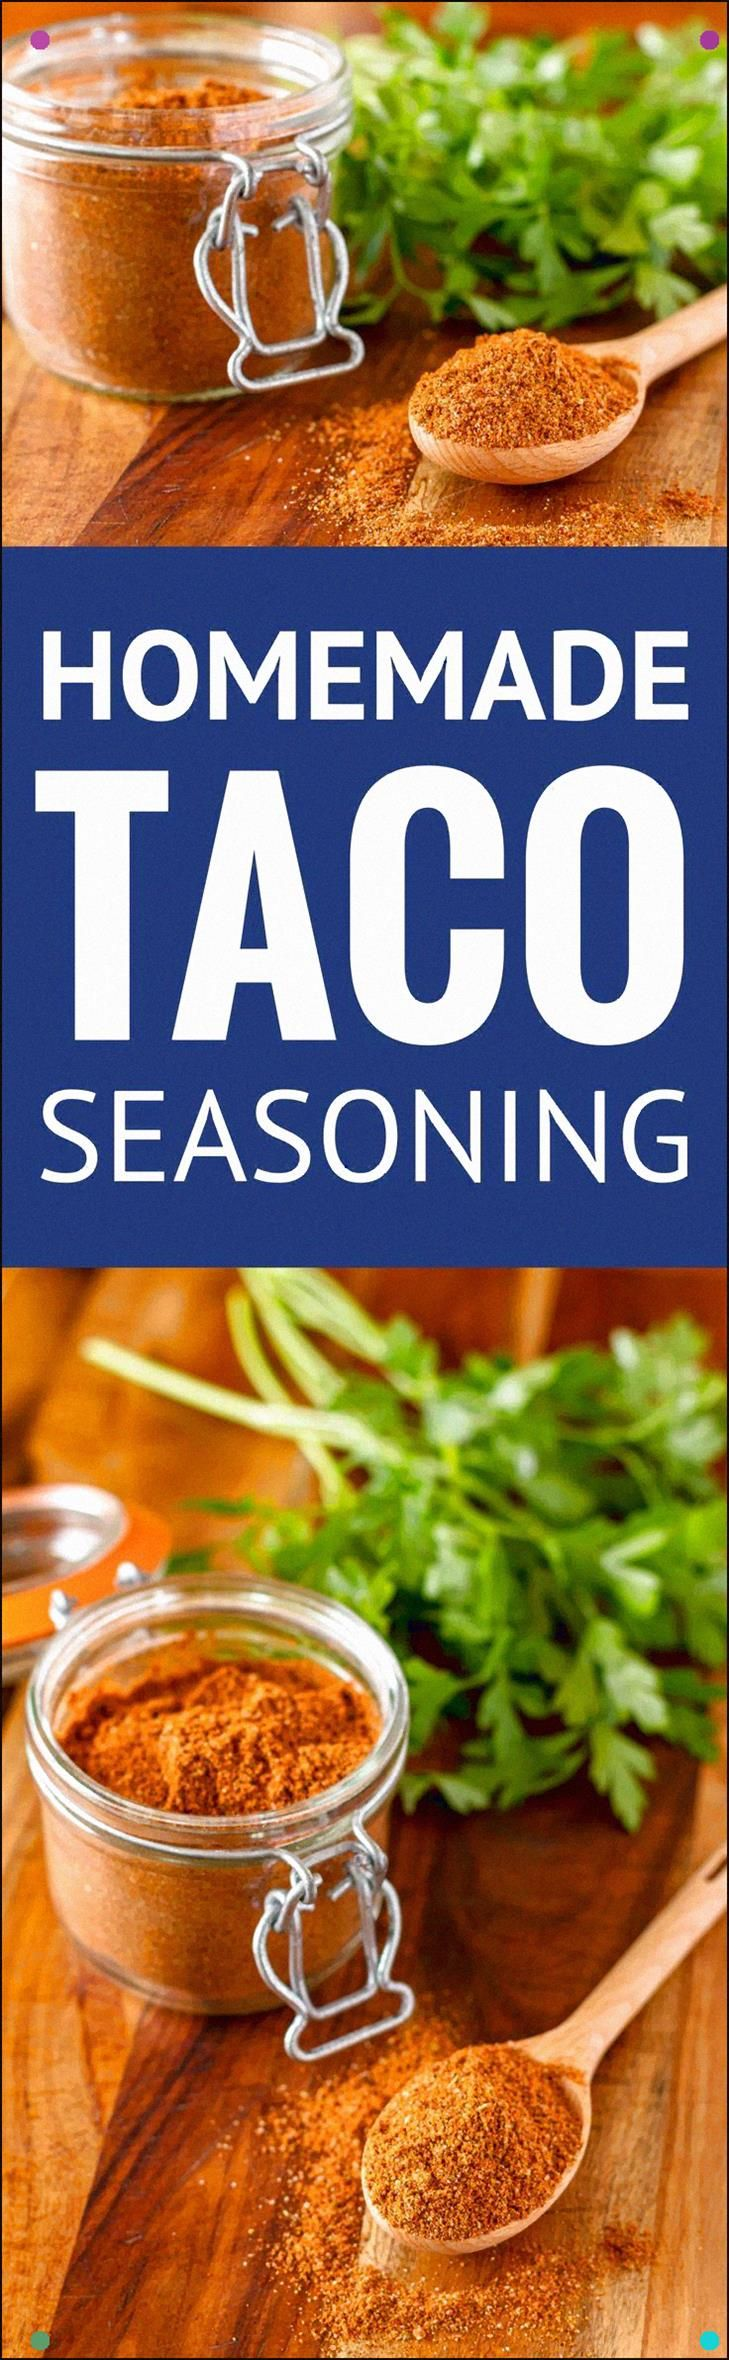 Homemade Taco Seasoning Mix - Make Your Own All Purpose Taco Meat Seasoning And Youll Never Go Back To The Icky Processed Store Bought Version Again... Simple, Less Expensive, Preservative-Free And Whole30 Approved Taco Seasoning Recipe Diy Taco Seasoning Whole30 Taco Seasoning Beef Taco Seasoning Chicken Taco Seasoning Find The Recipe On #diytacoseasoning